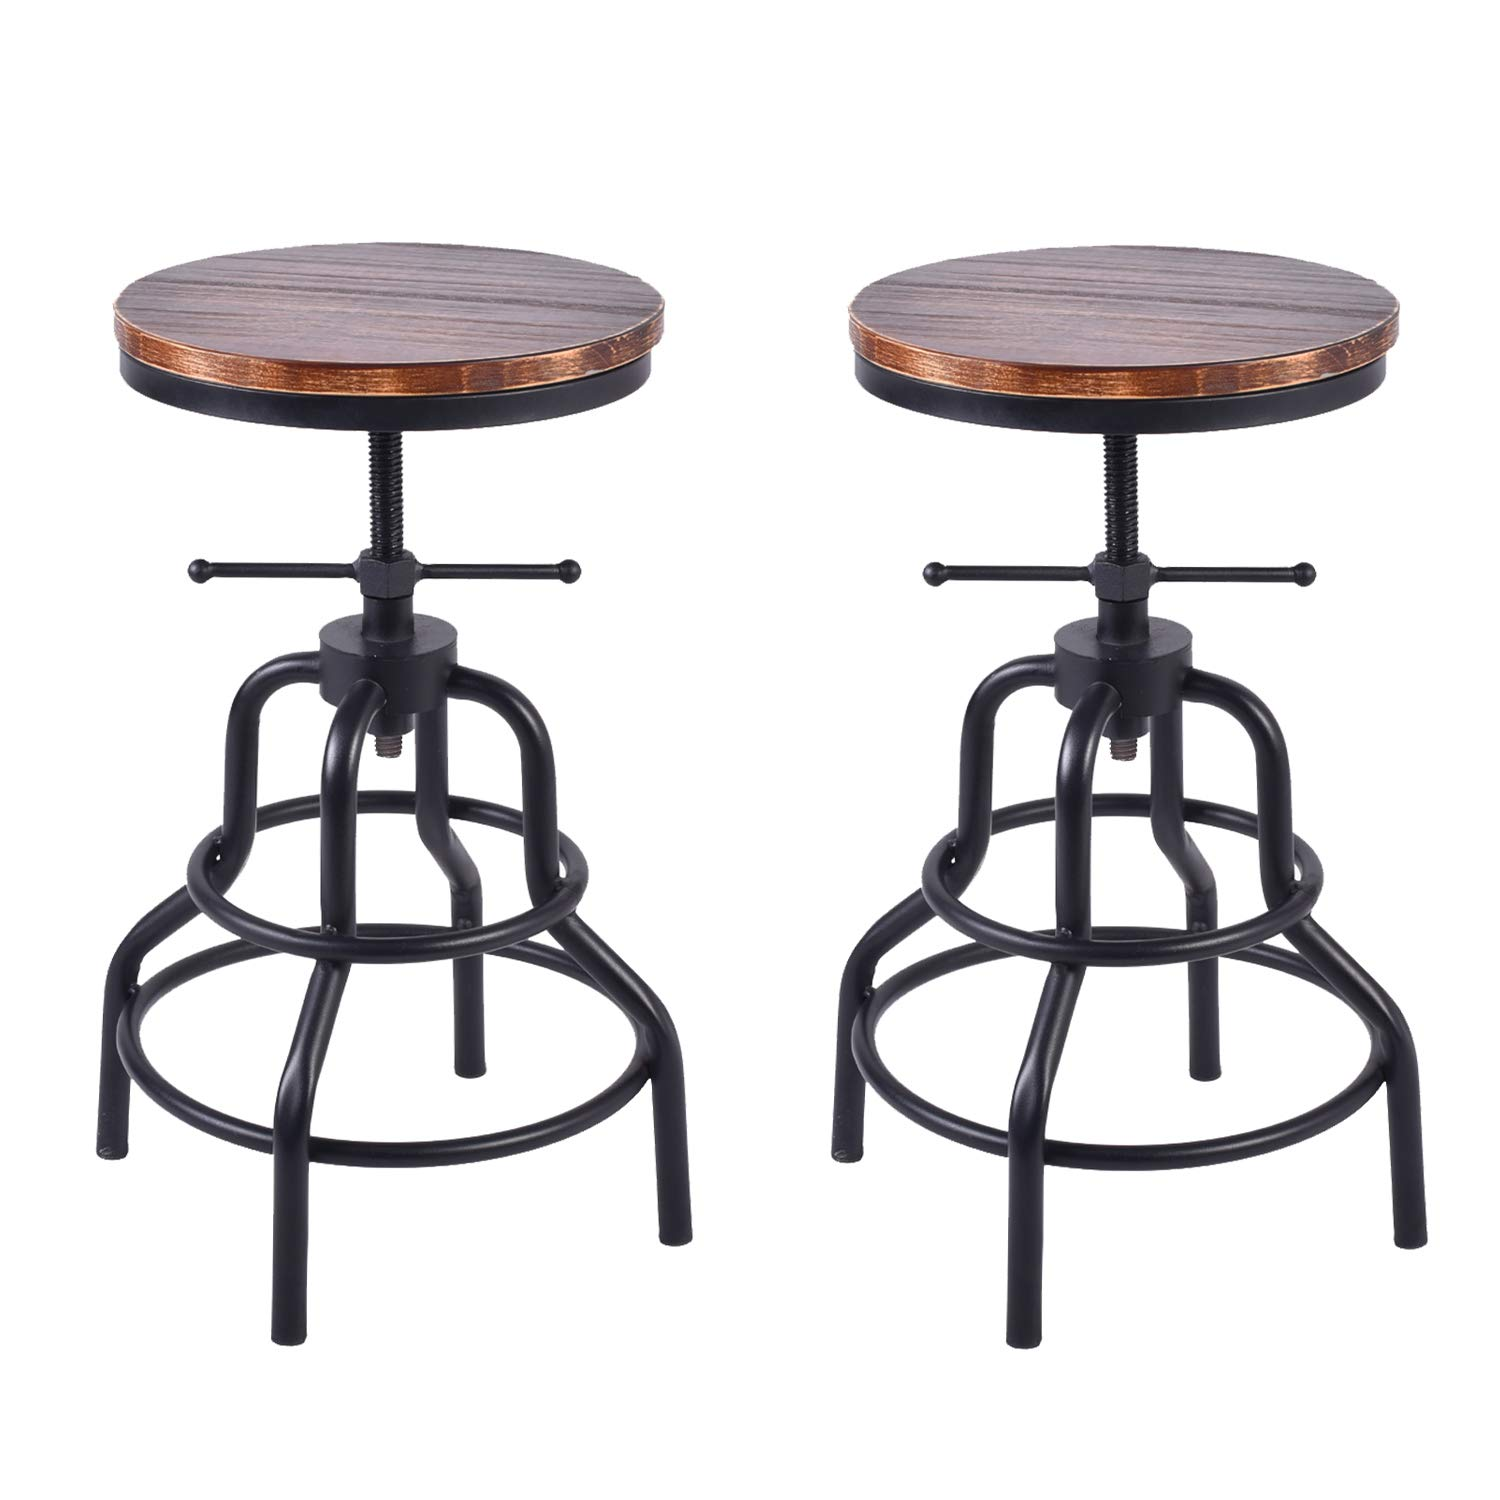 Topower American Antique Industrial Design Metal Adjustable Height Bar Stool Chair Kitchen Dining Breakfast Chair Natural Pinewood Industrial Style Set of 2